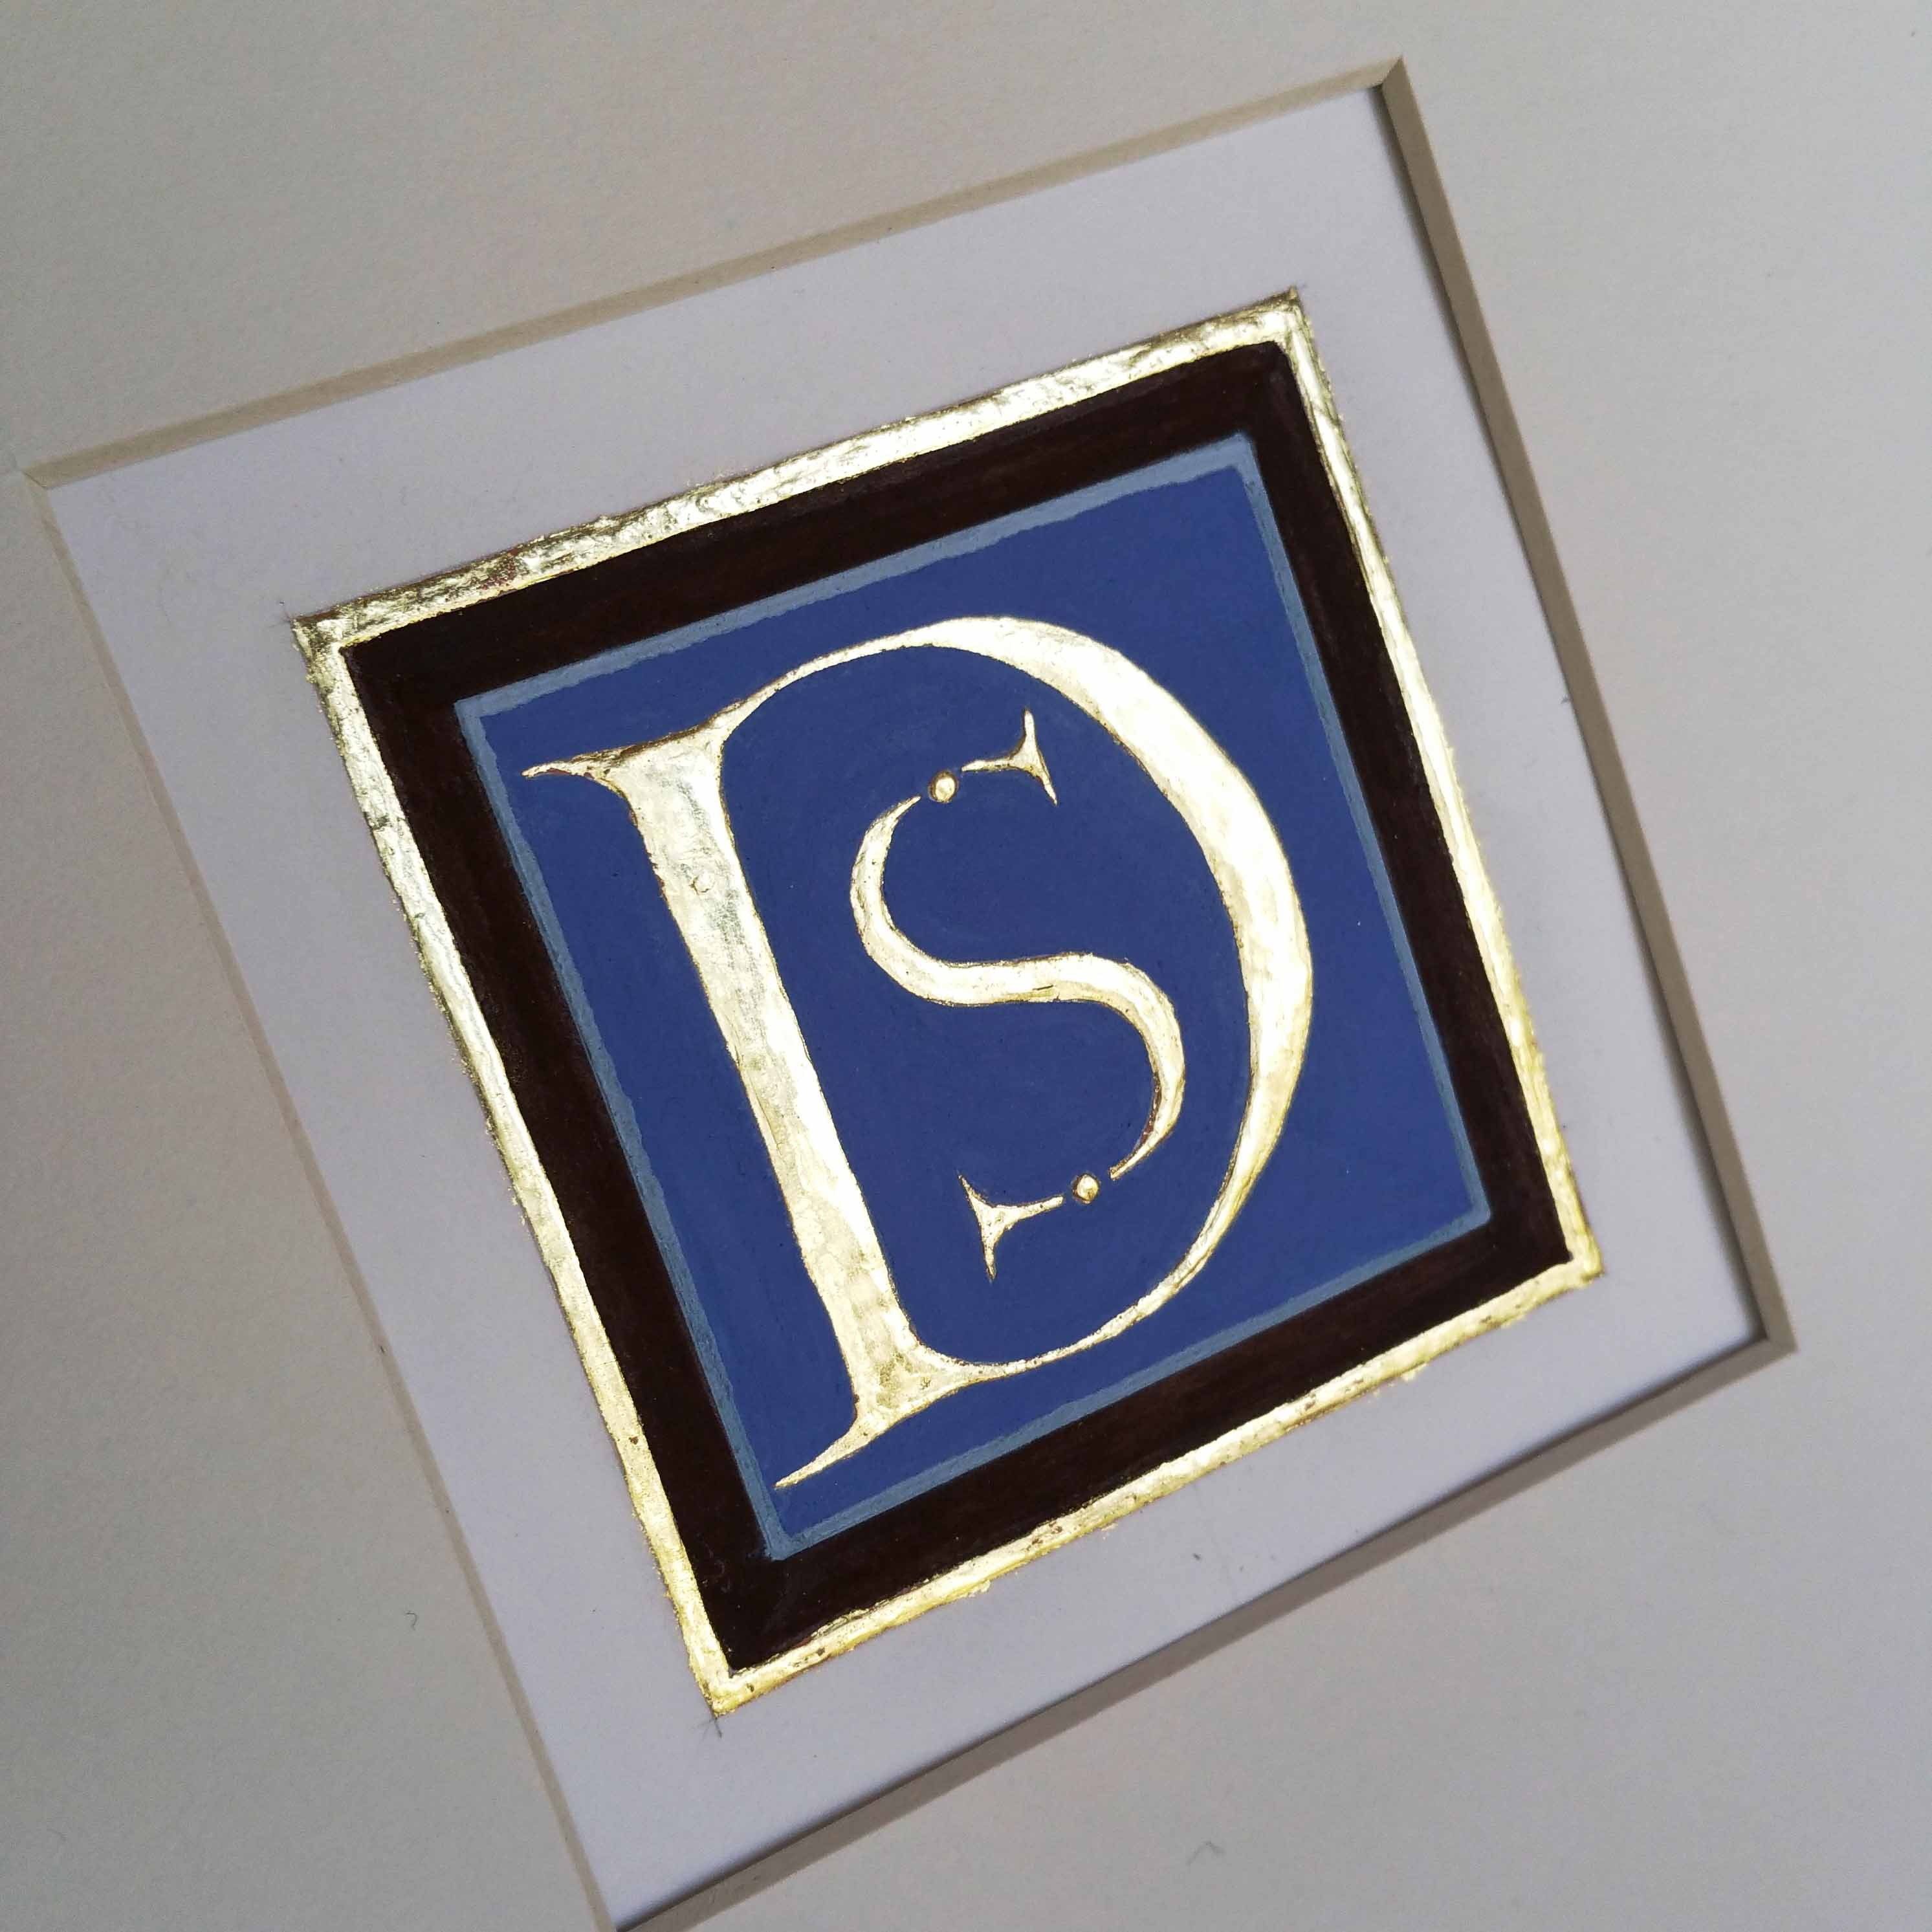 Gilded letters D and S